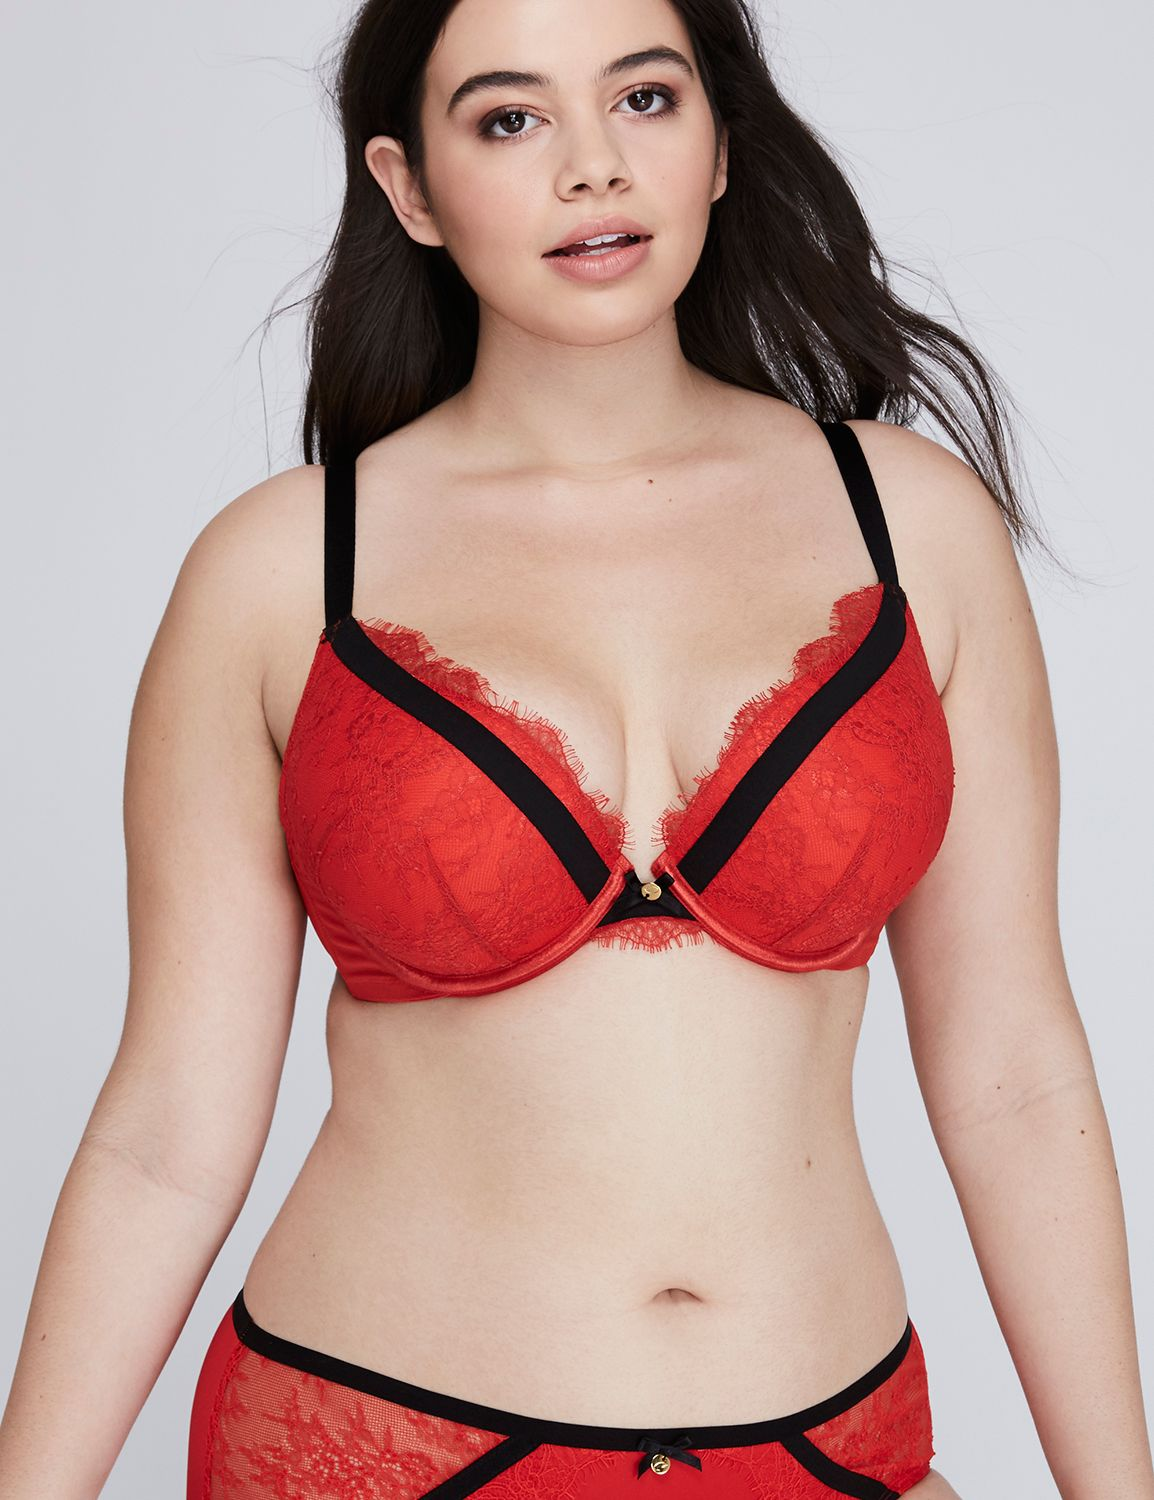 Lane Bryant Women's Boost Plunge Bra With Eyelash Lace & Contrast Bands 36DD Mars Red